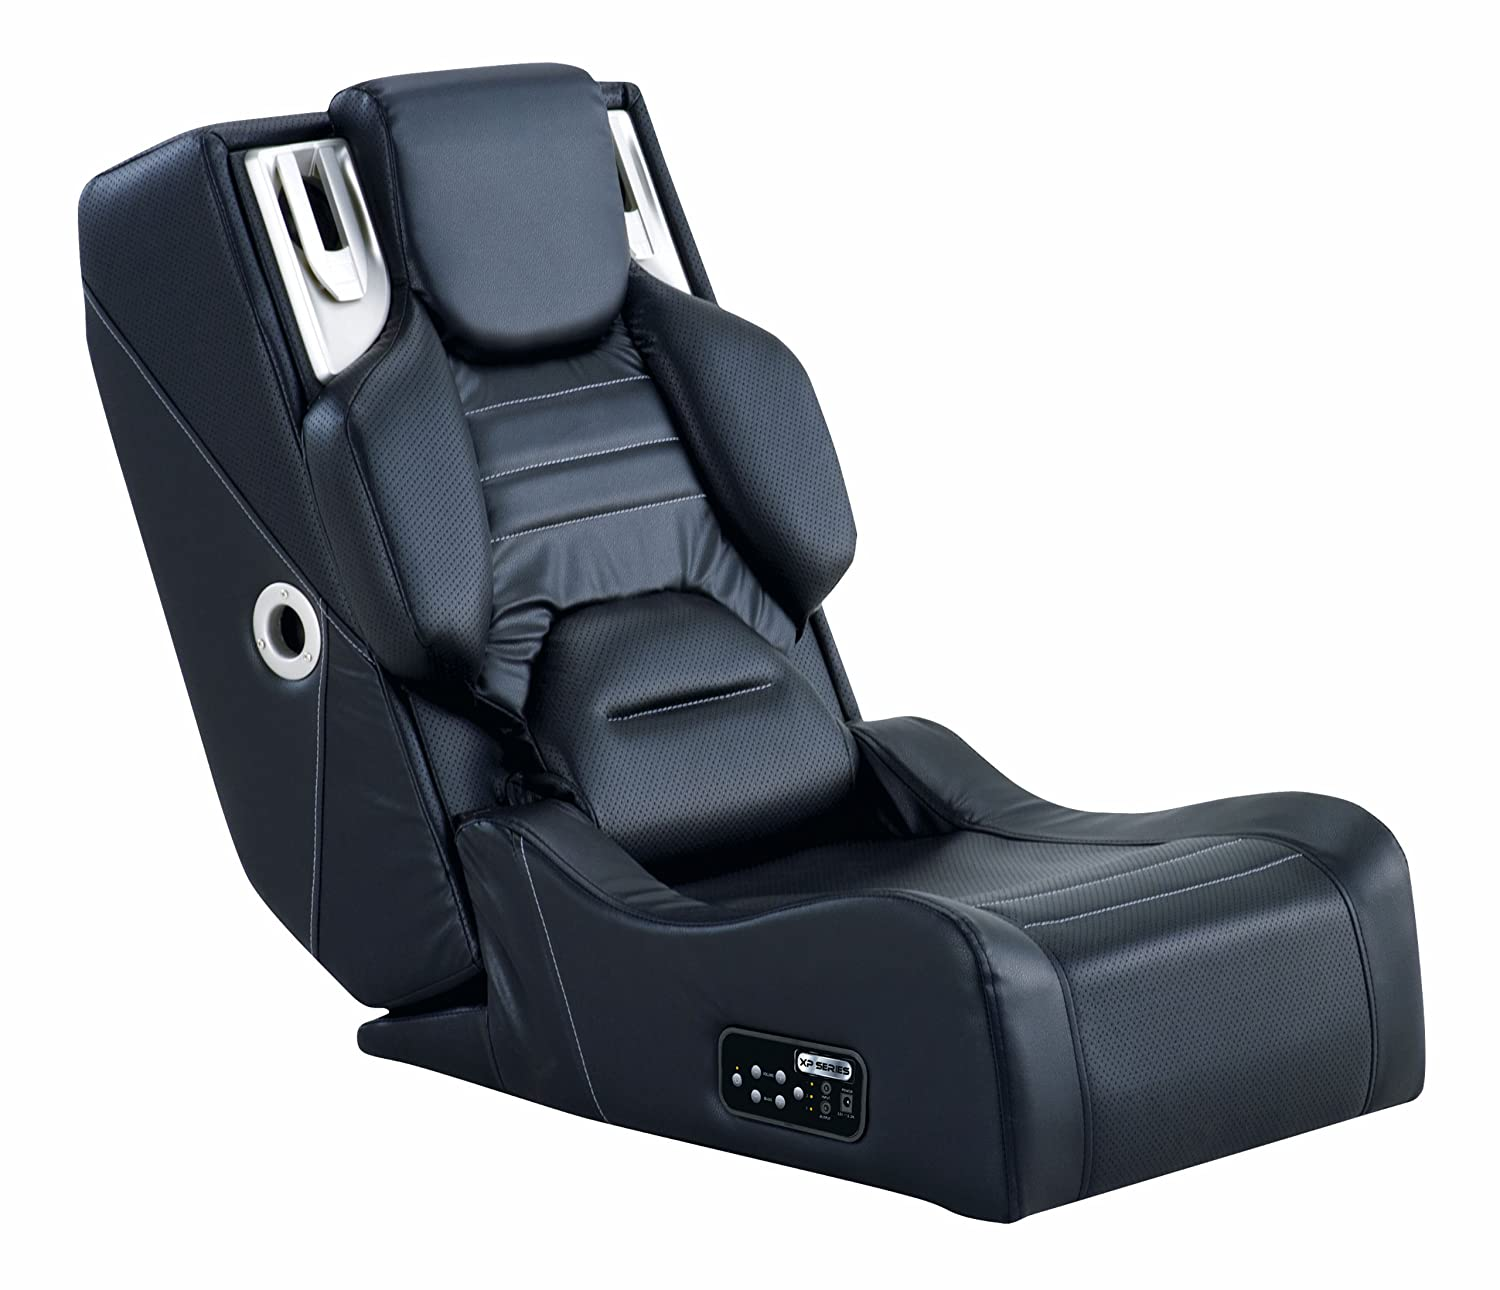 Amazon.com: Cohesion XP 11.2 Gaming Chair Ottoman with Wireless Audio:  Sports & Outdoors - Amazon.com: Cohesion XP 11.2 Gaming Chair Ottoman With Wireless